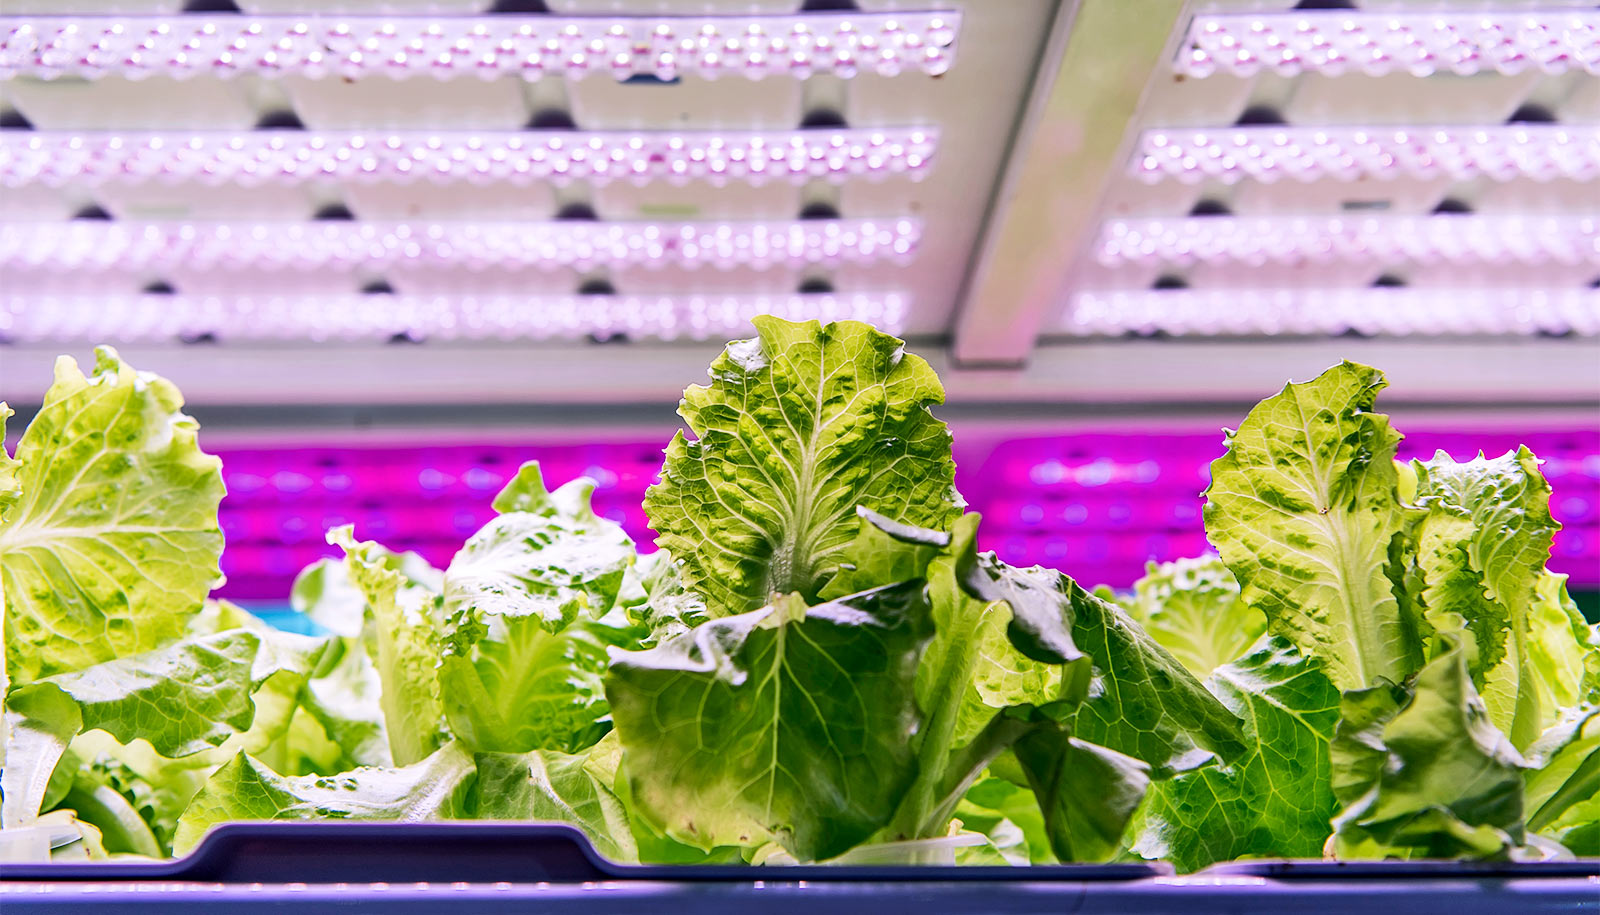 Standards would boost efficiency of LED lighting in greenhouses